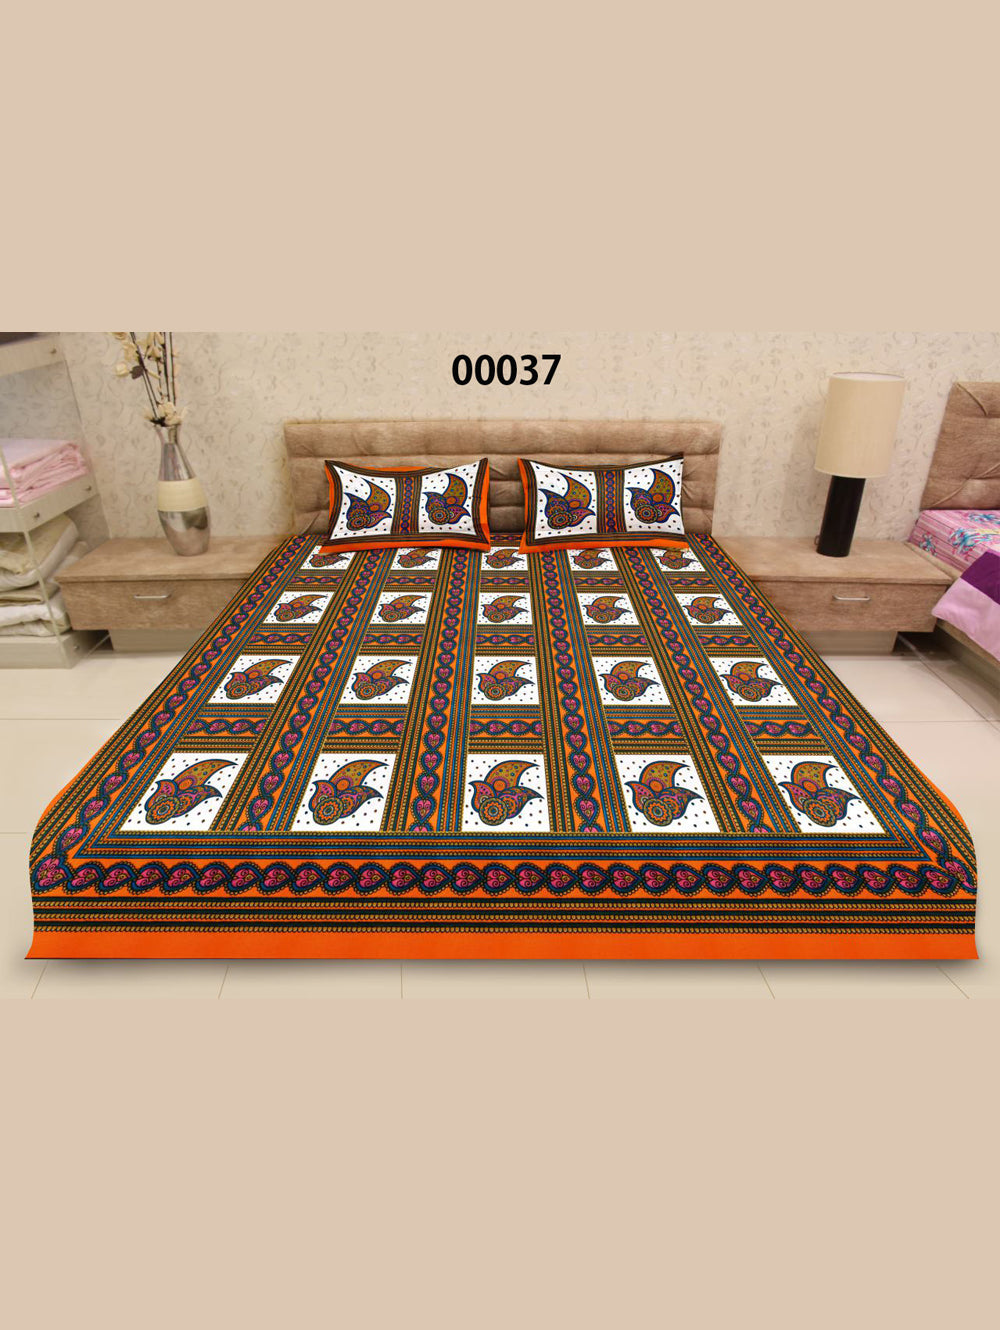 00037FantaOrange and Multicolour Ethnic Cotton Queen Size Floral Bedsheet With 2 Pillow Covers